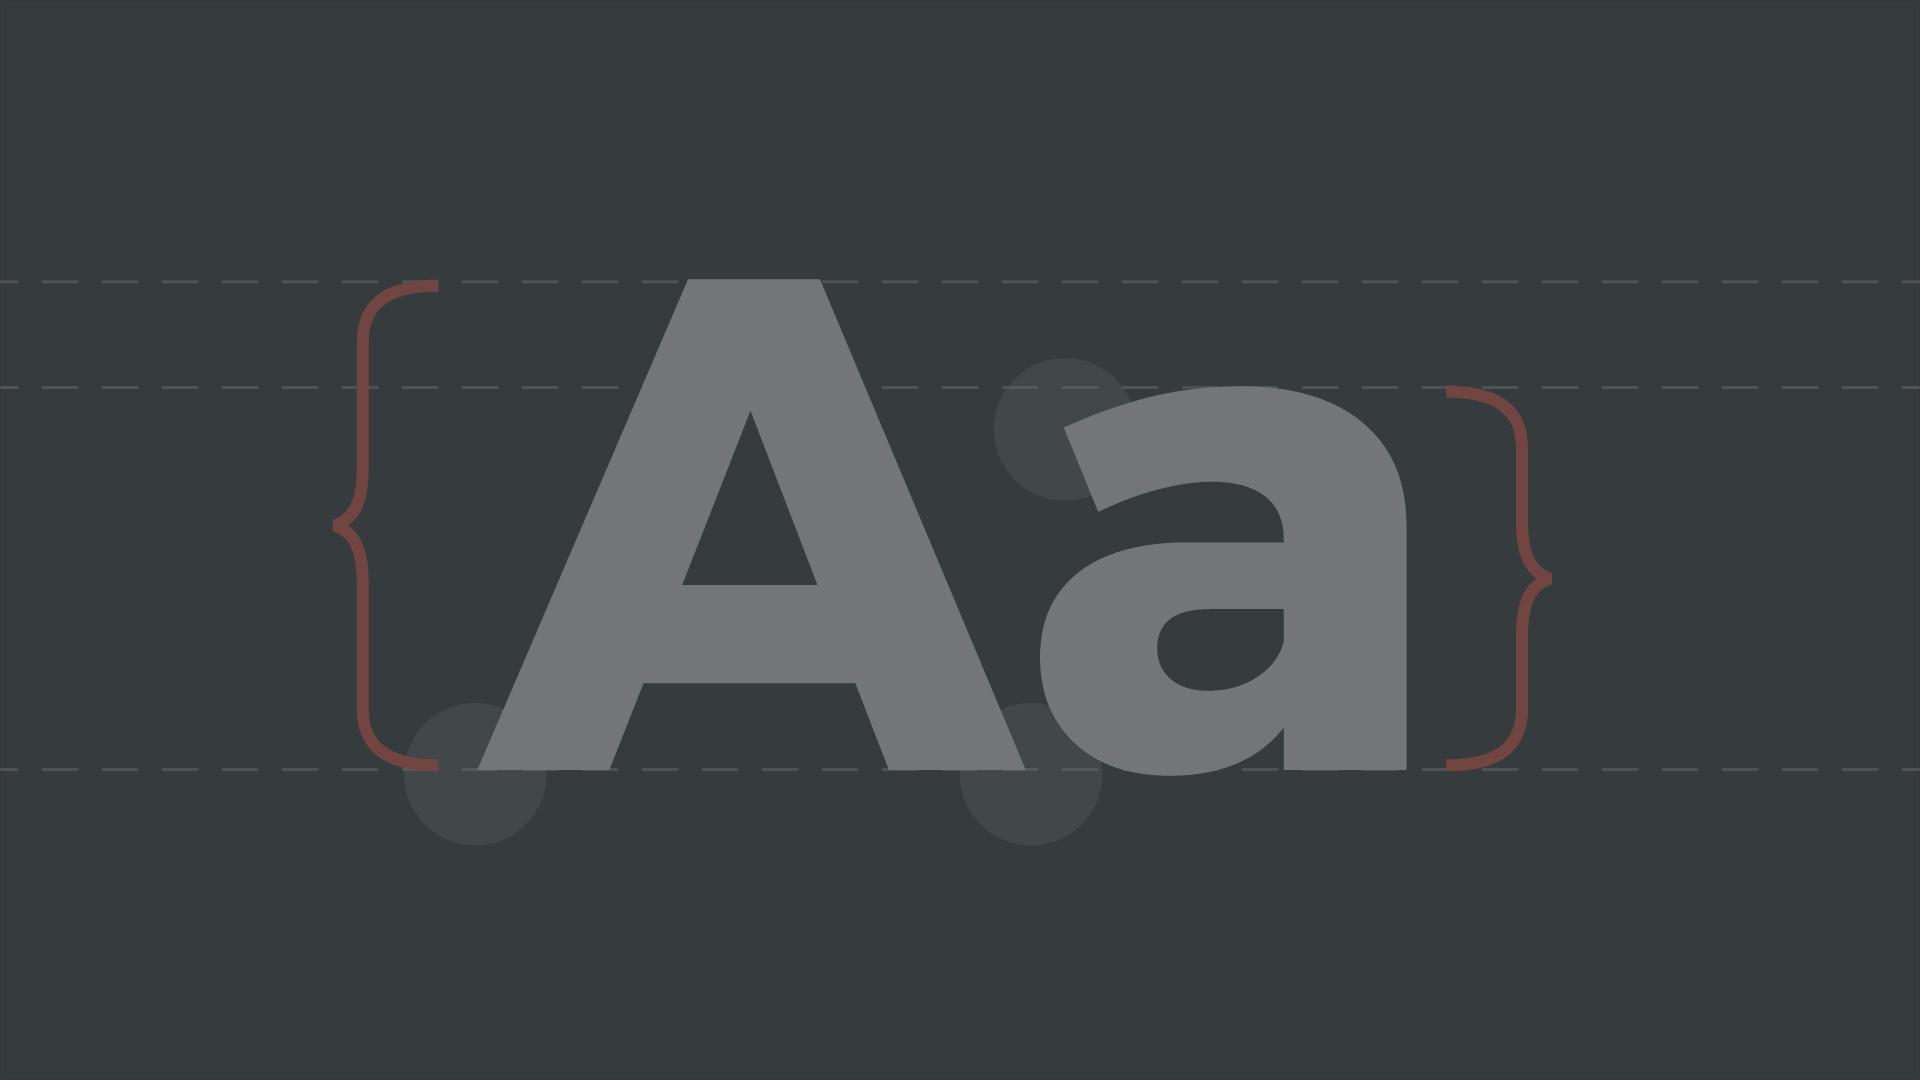 Typography Guide: 5 Quick Tips for Better Type